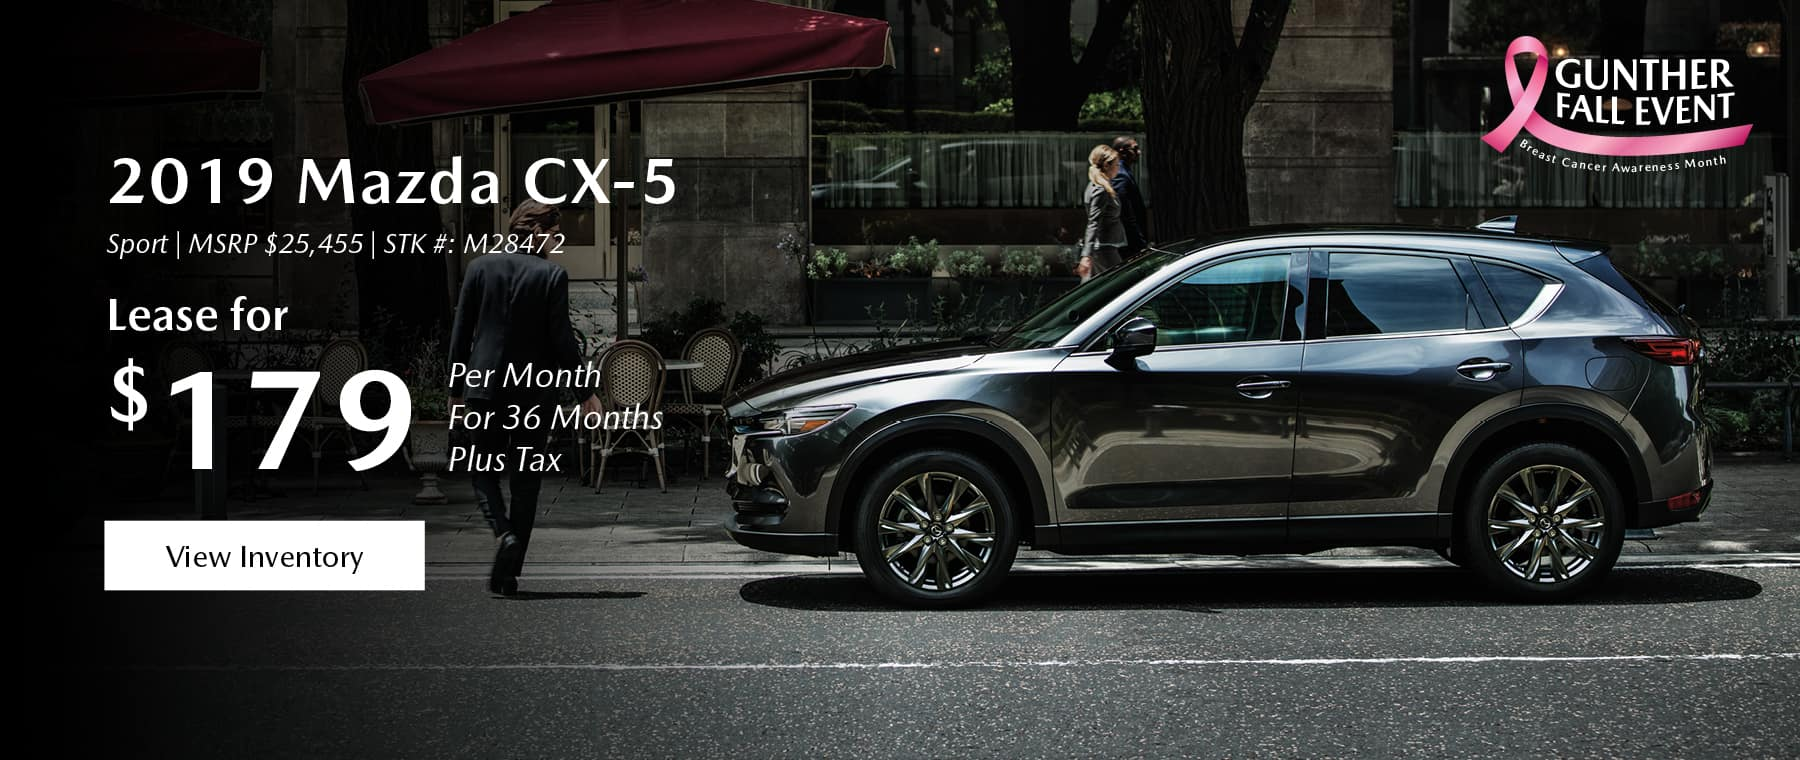 Lease the 2019 Mazda CX-5 for $179 per month, plus tax.